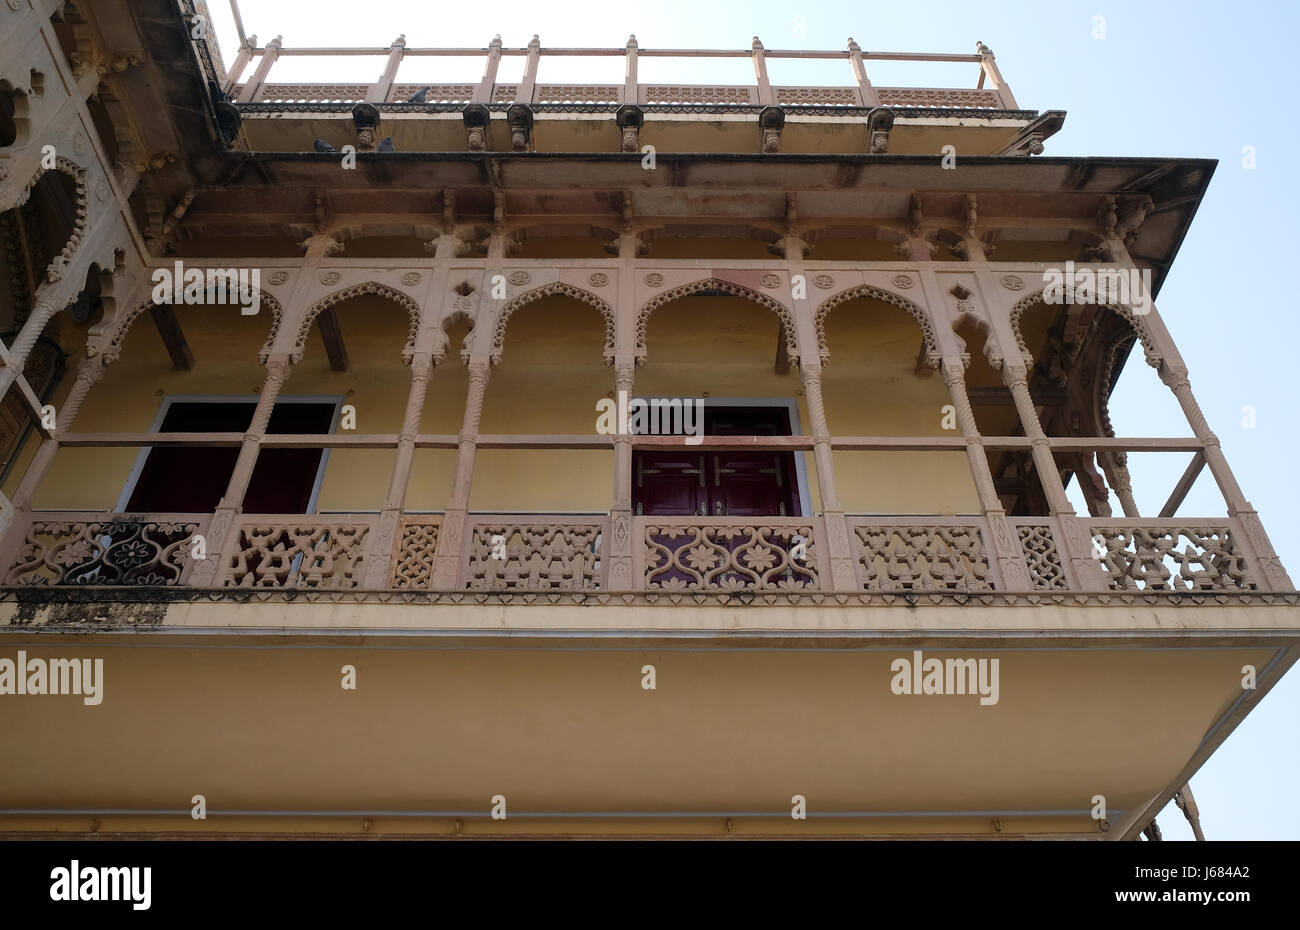 Architectural detail in Jaipur City Palace, Rajasthan, India. Palace was the seat of the Maharaja of Jaipur - Stock Image